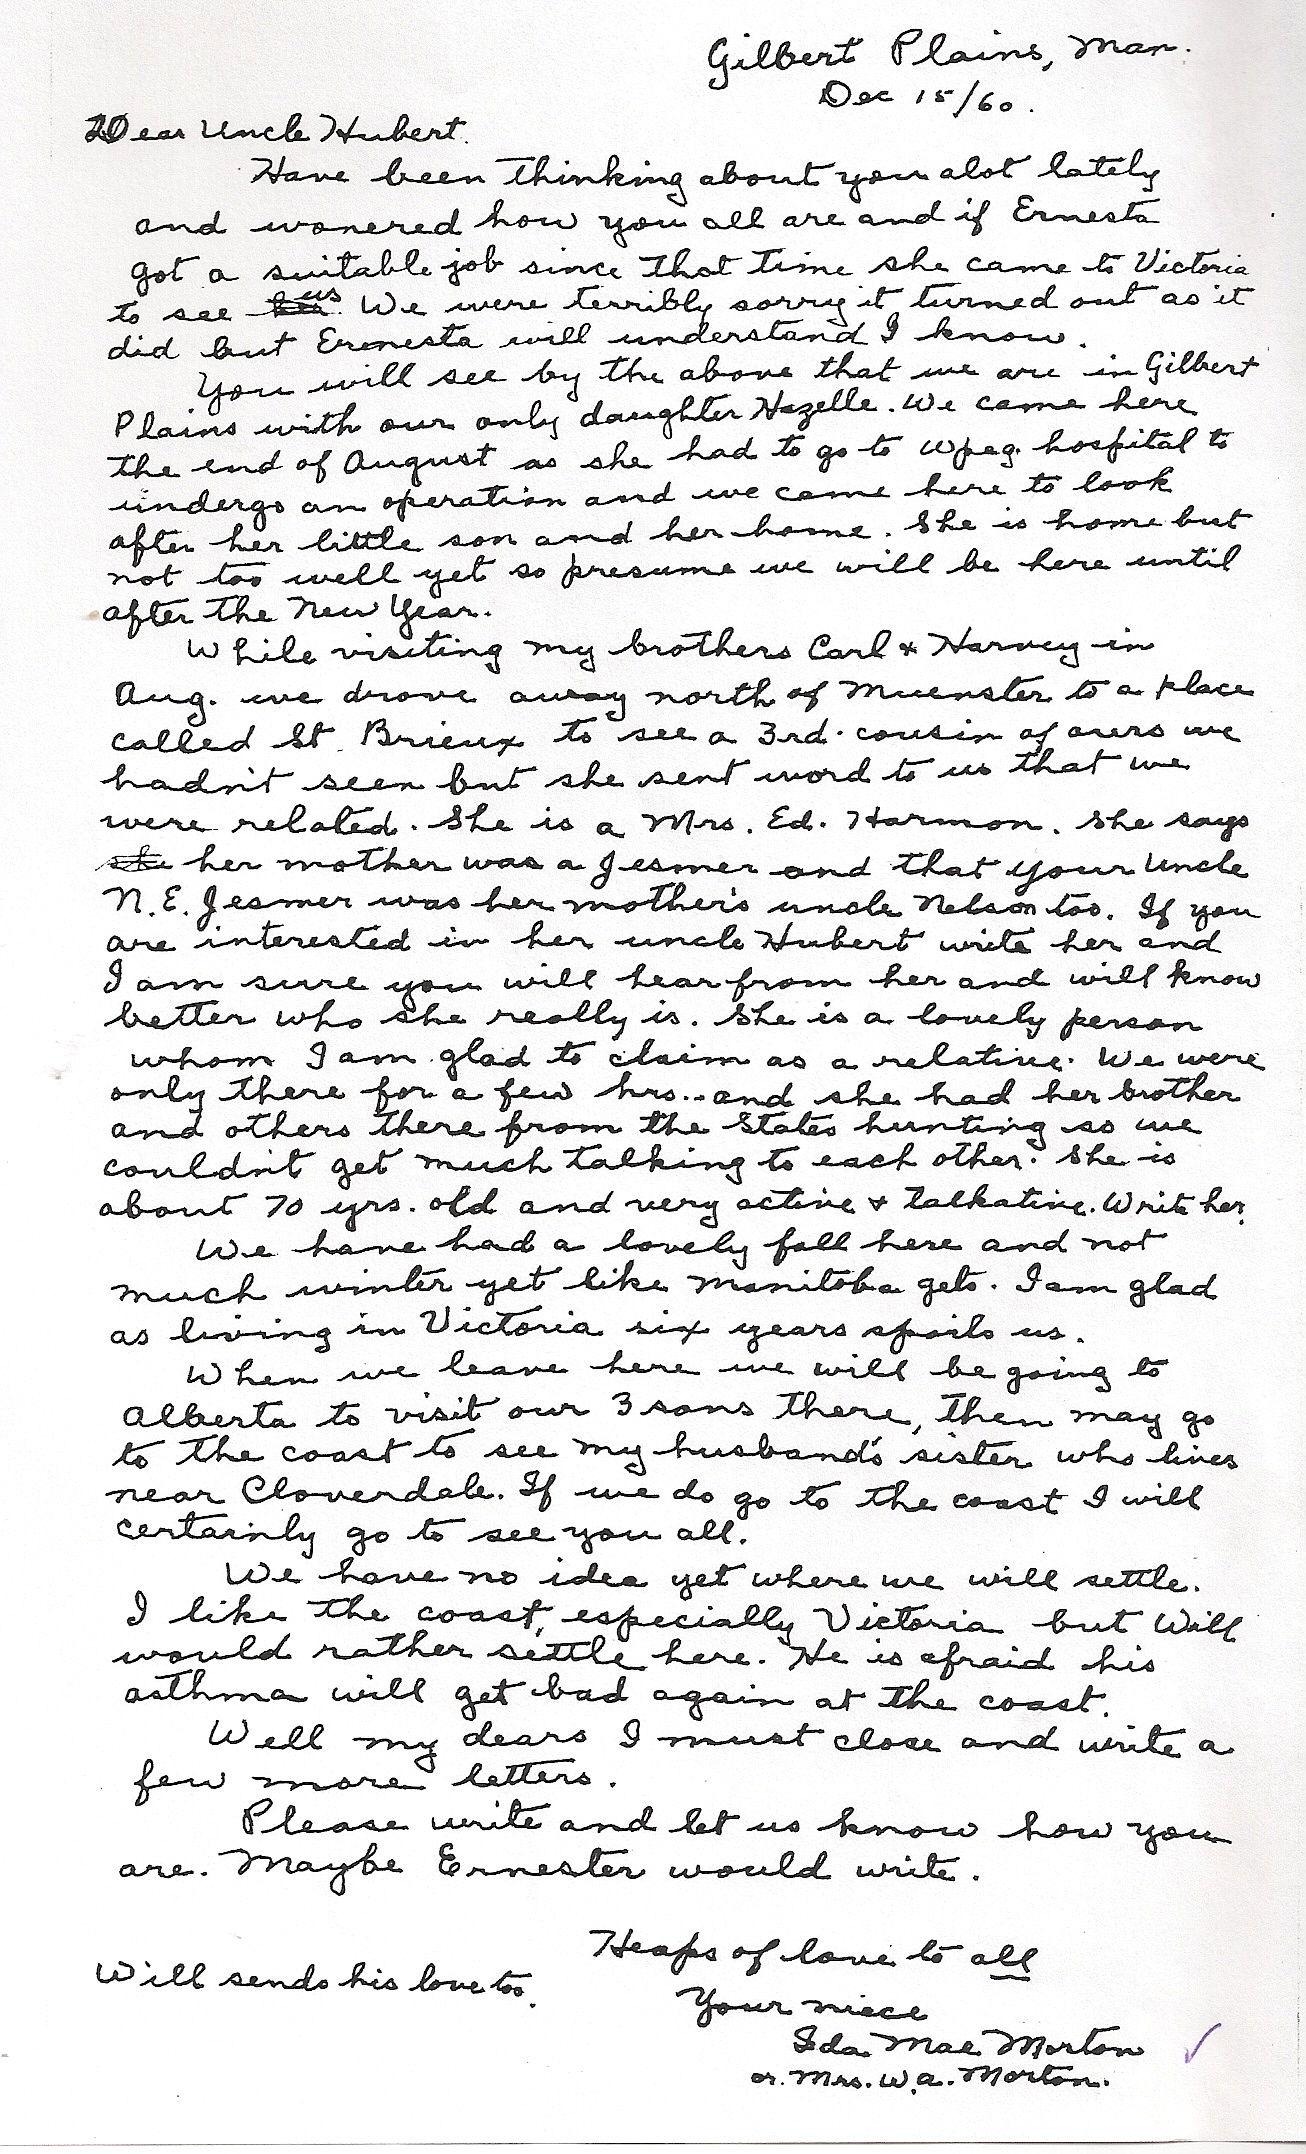 Letter to uncle Hubert 1960